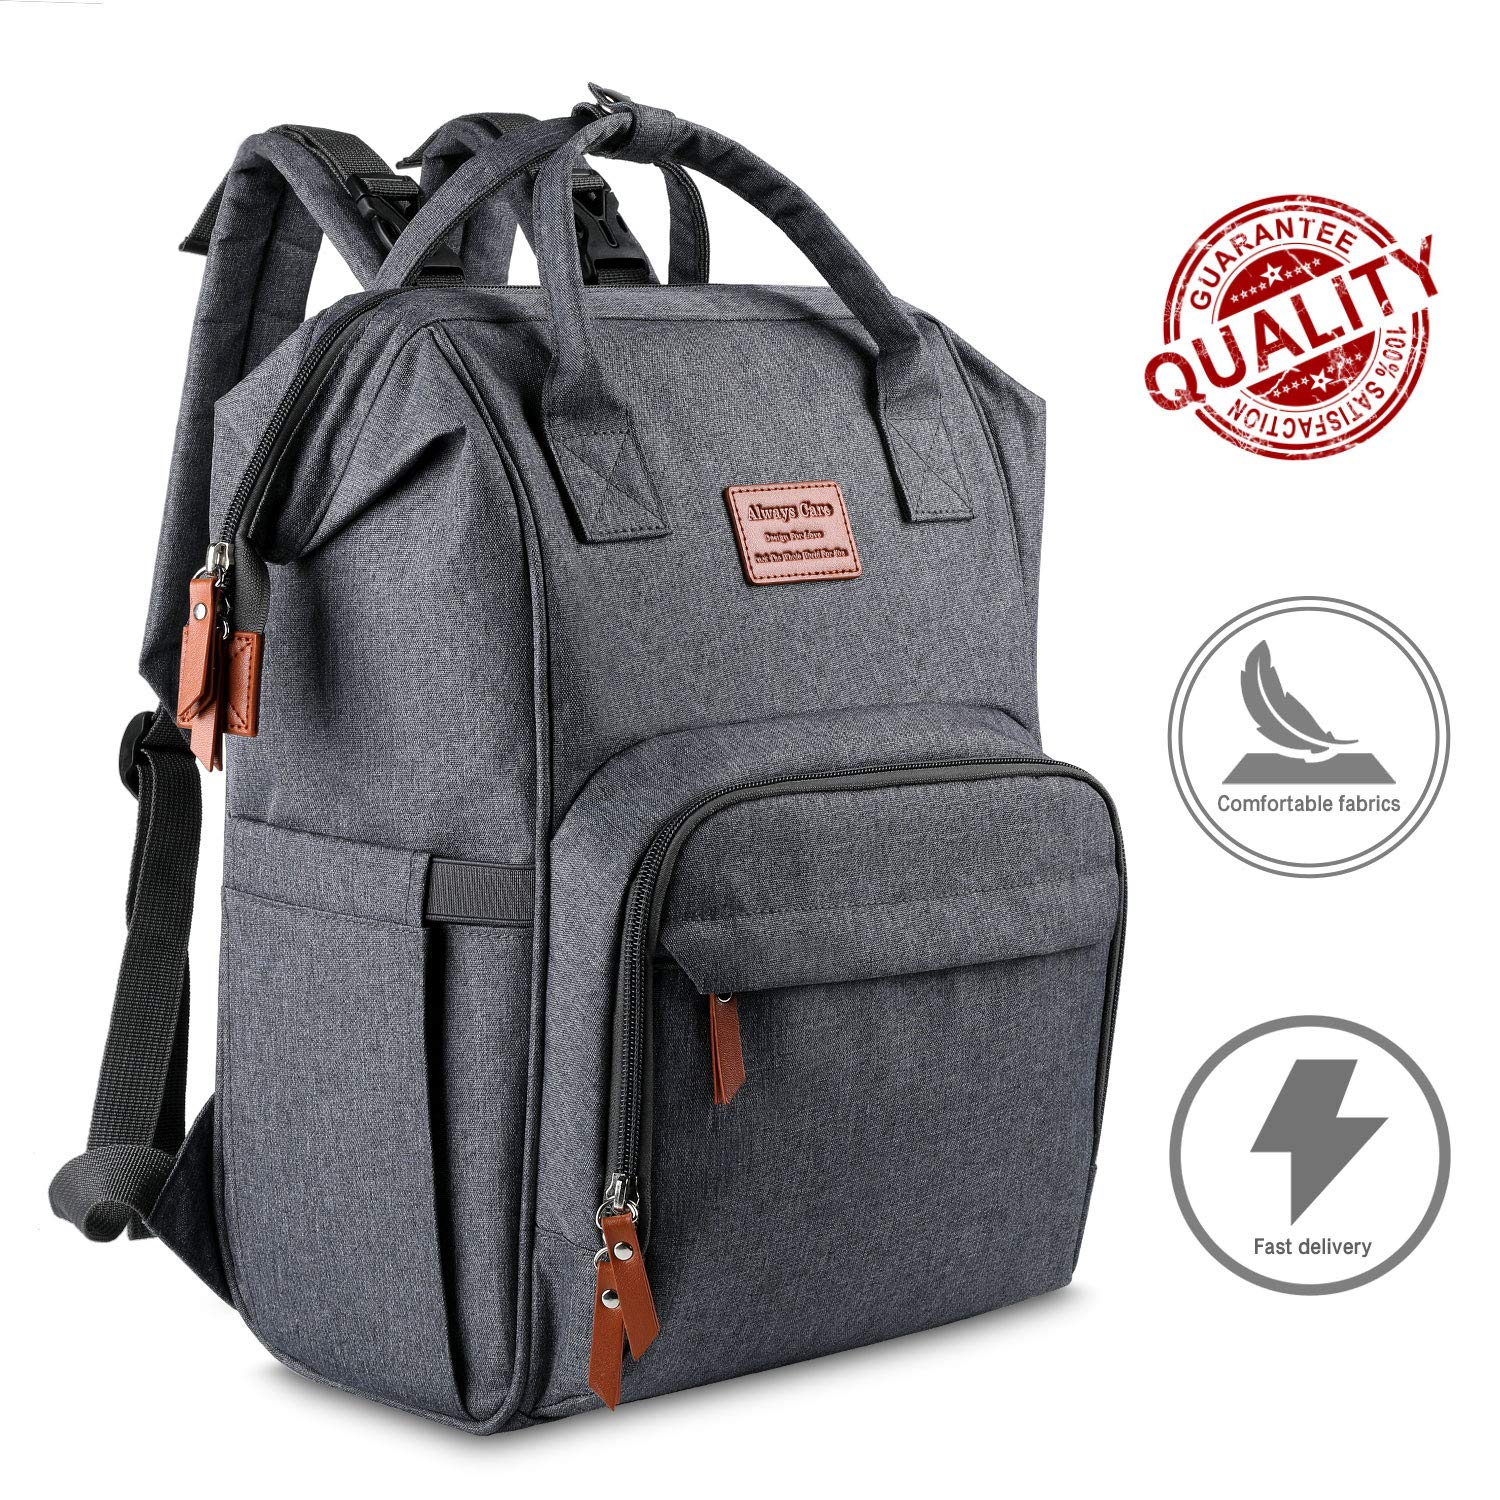 Diaper Bag Backpack for Dad Strong Strap Land Diaper backpack Sturdy Zipper Grey Baby Bag Backpack for Girls /& Boys Baby Backpack Diaper Bag for Mom